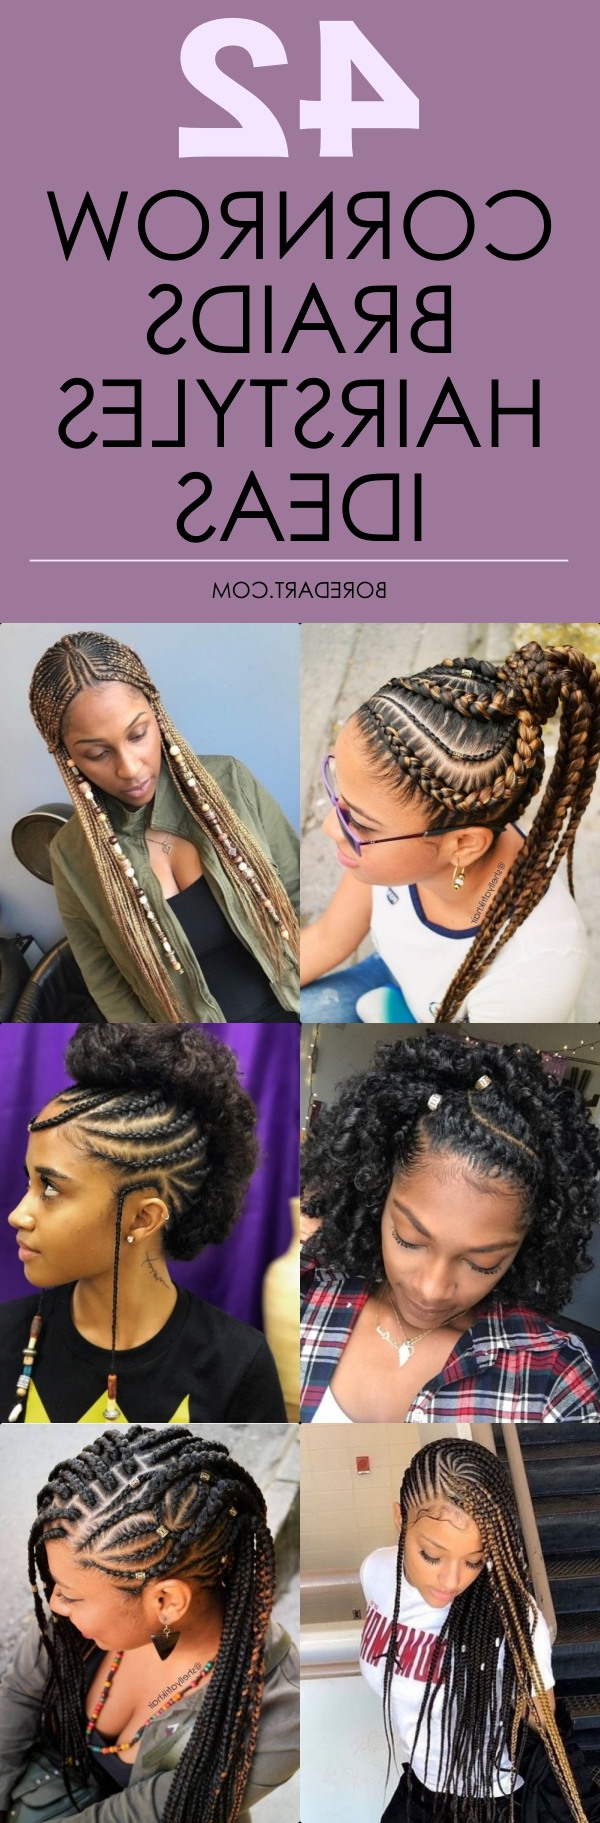 42 Catchy Cornrow Braids Hairstyles Ideas To Try In 2019 Pertaining To Current Braided Mermaid Mohawk Hairstyles (View 14 of 20)